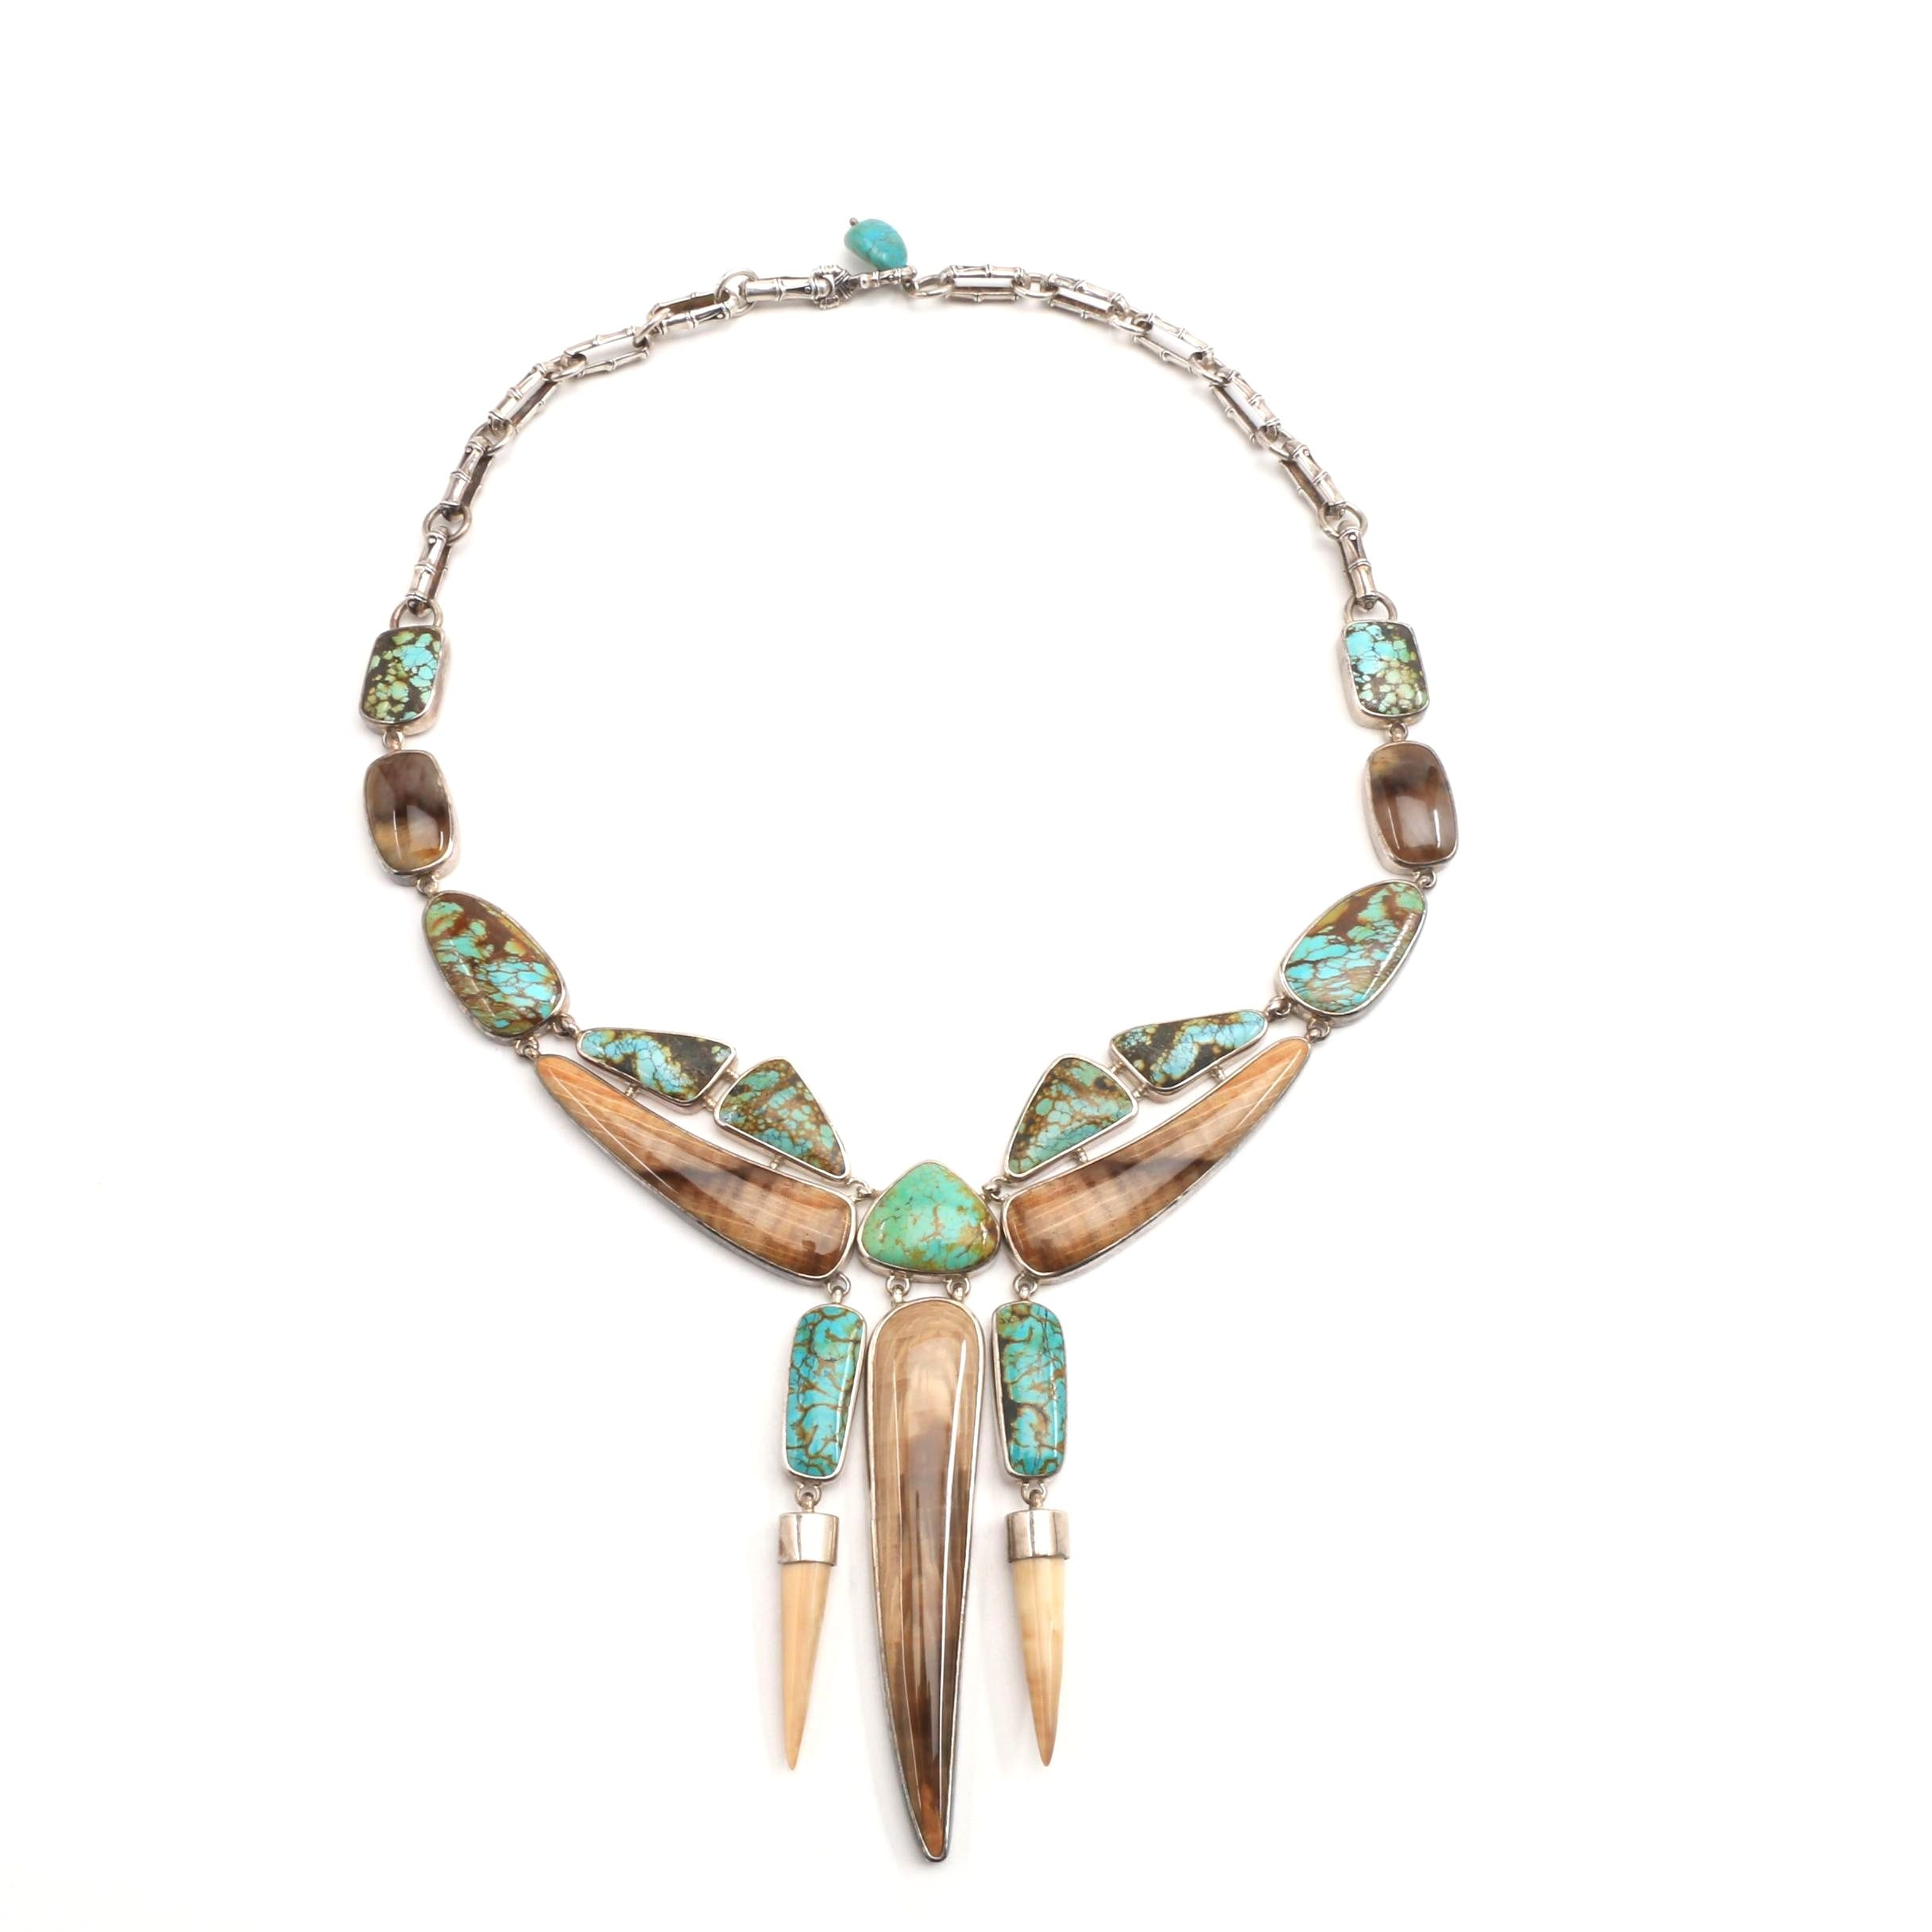 Turquoise and Horn Necklace in Sterling Silver